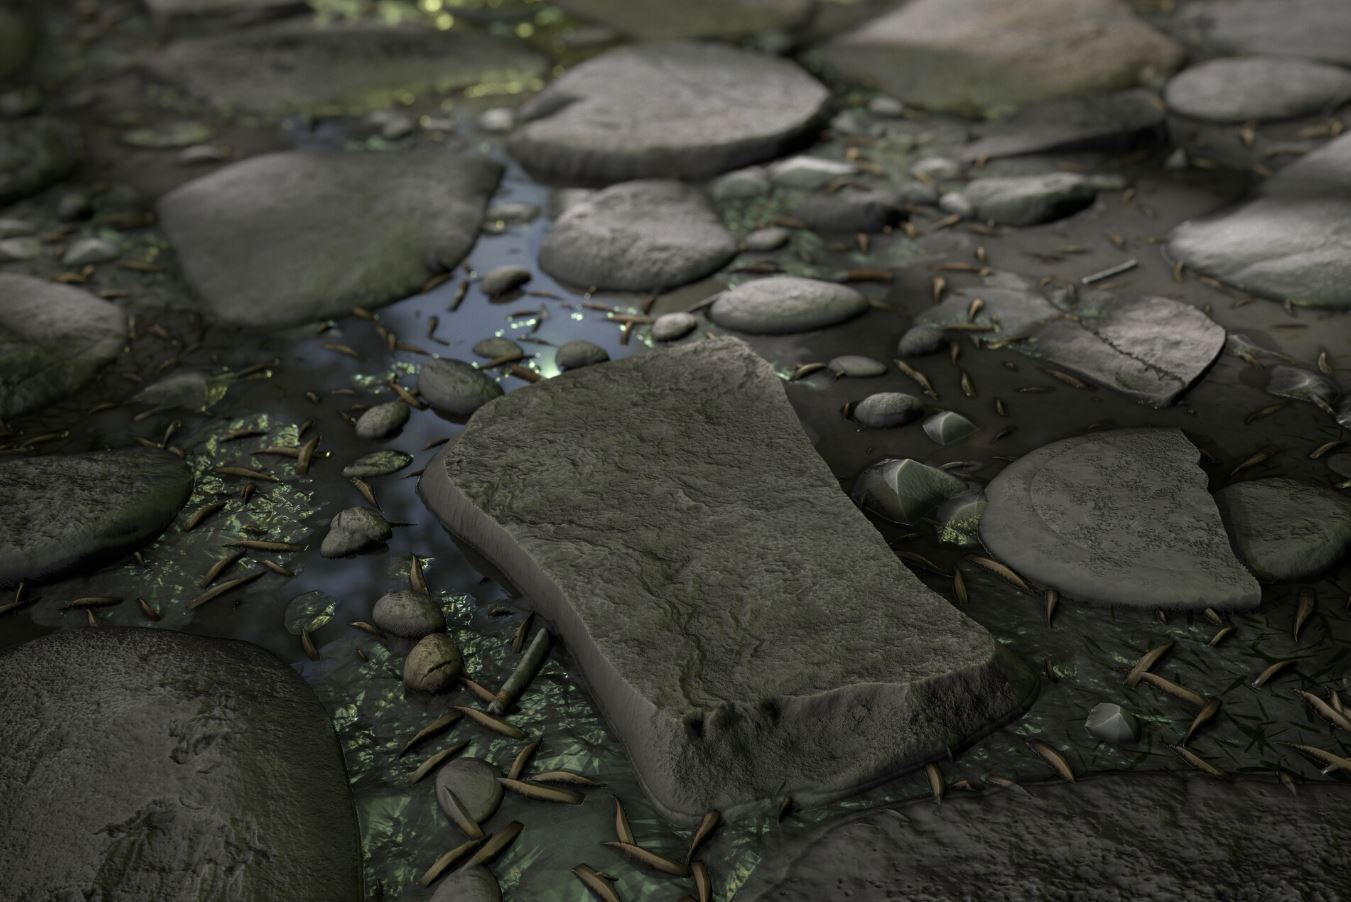 How to build the rock in the foreground in Substance Designer